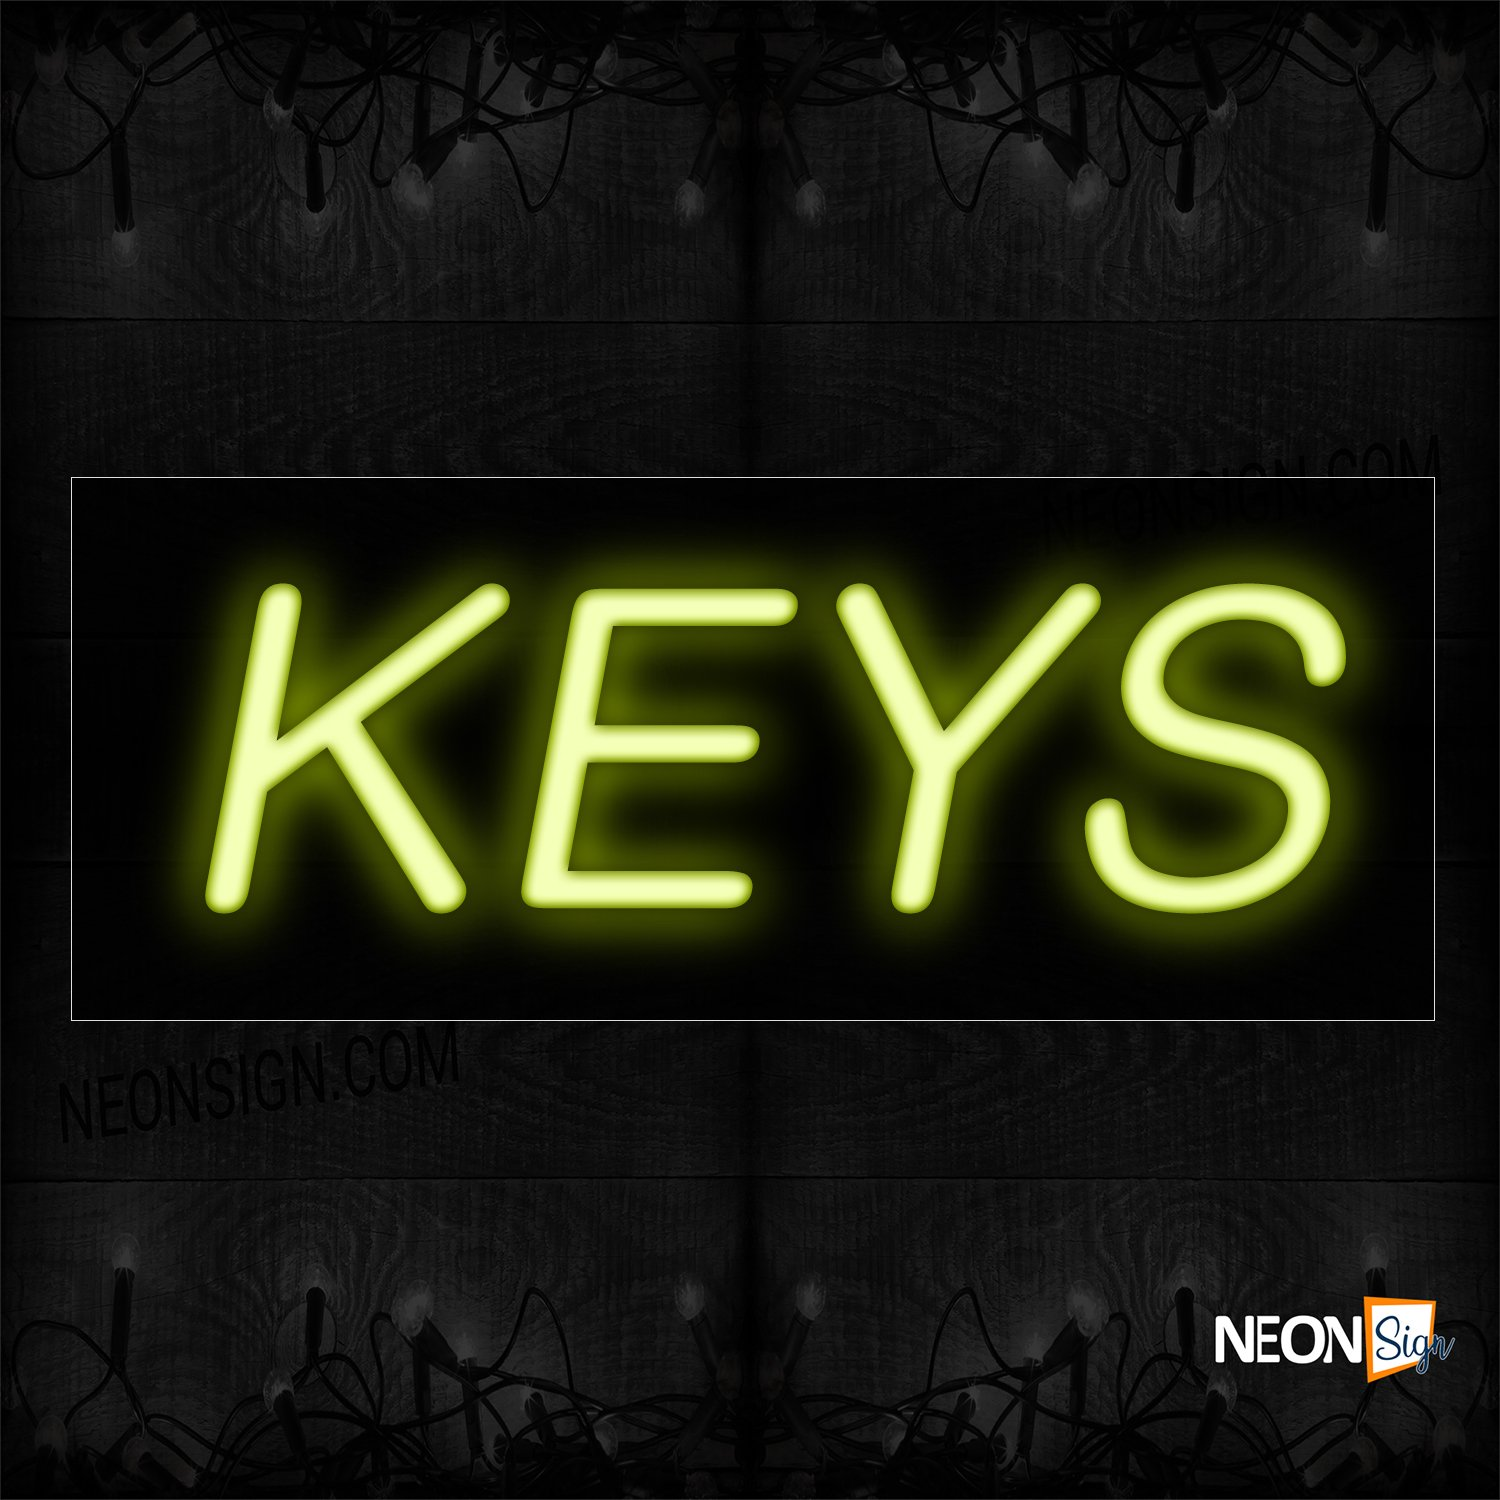 Image of 12089 Keys In Yellow Neon Sign_10x24 Black Backing